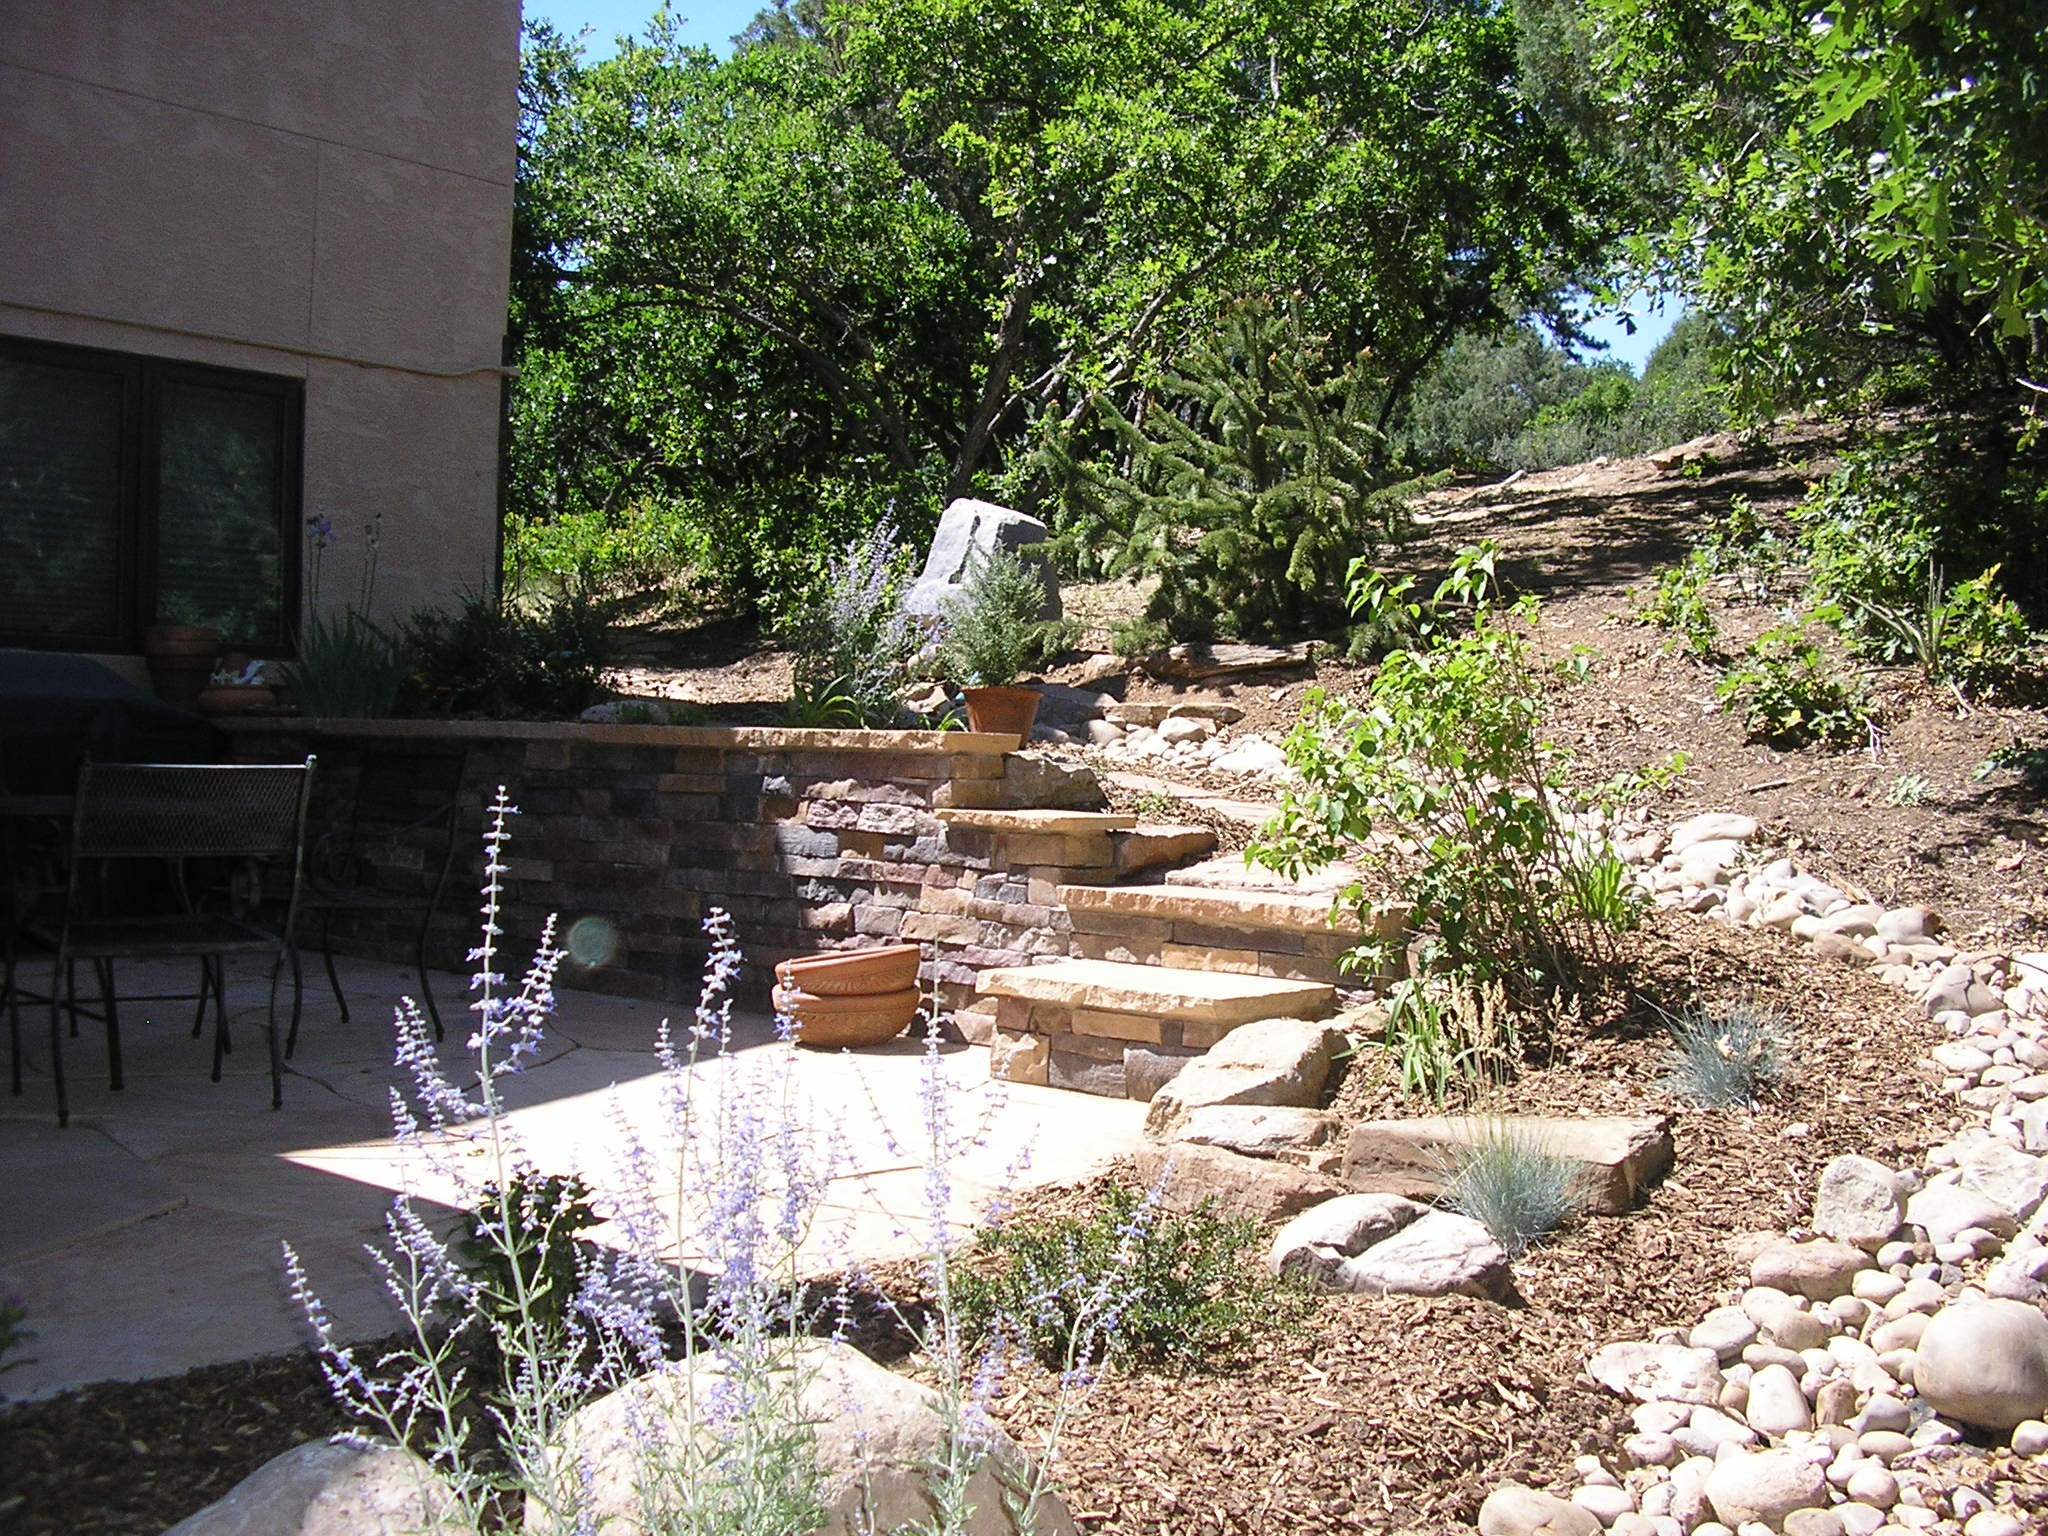 sustainable landscape architecture and design in durango colorado